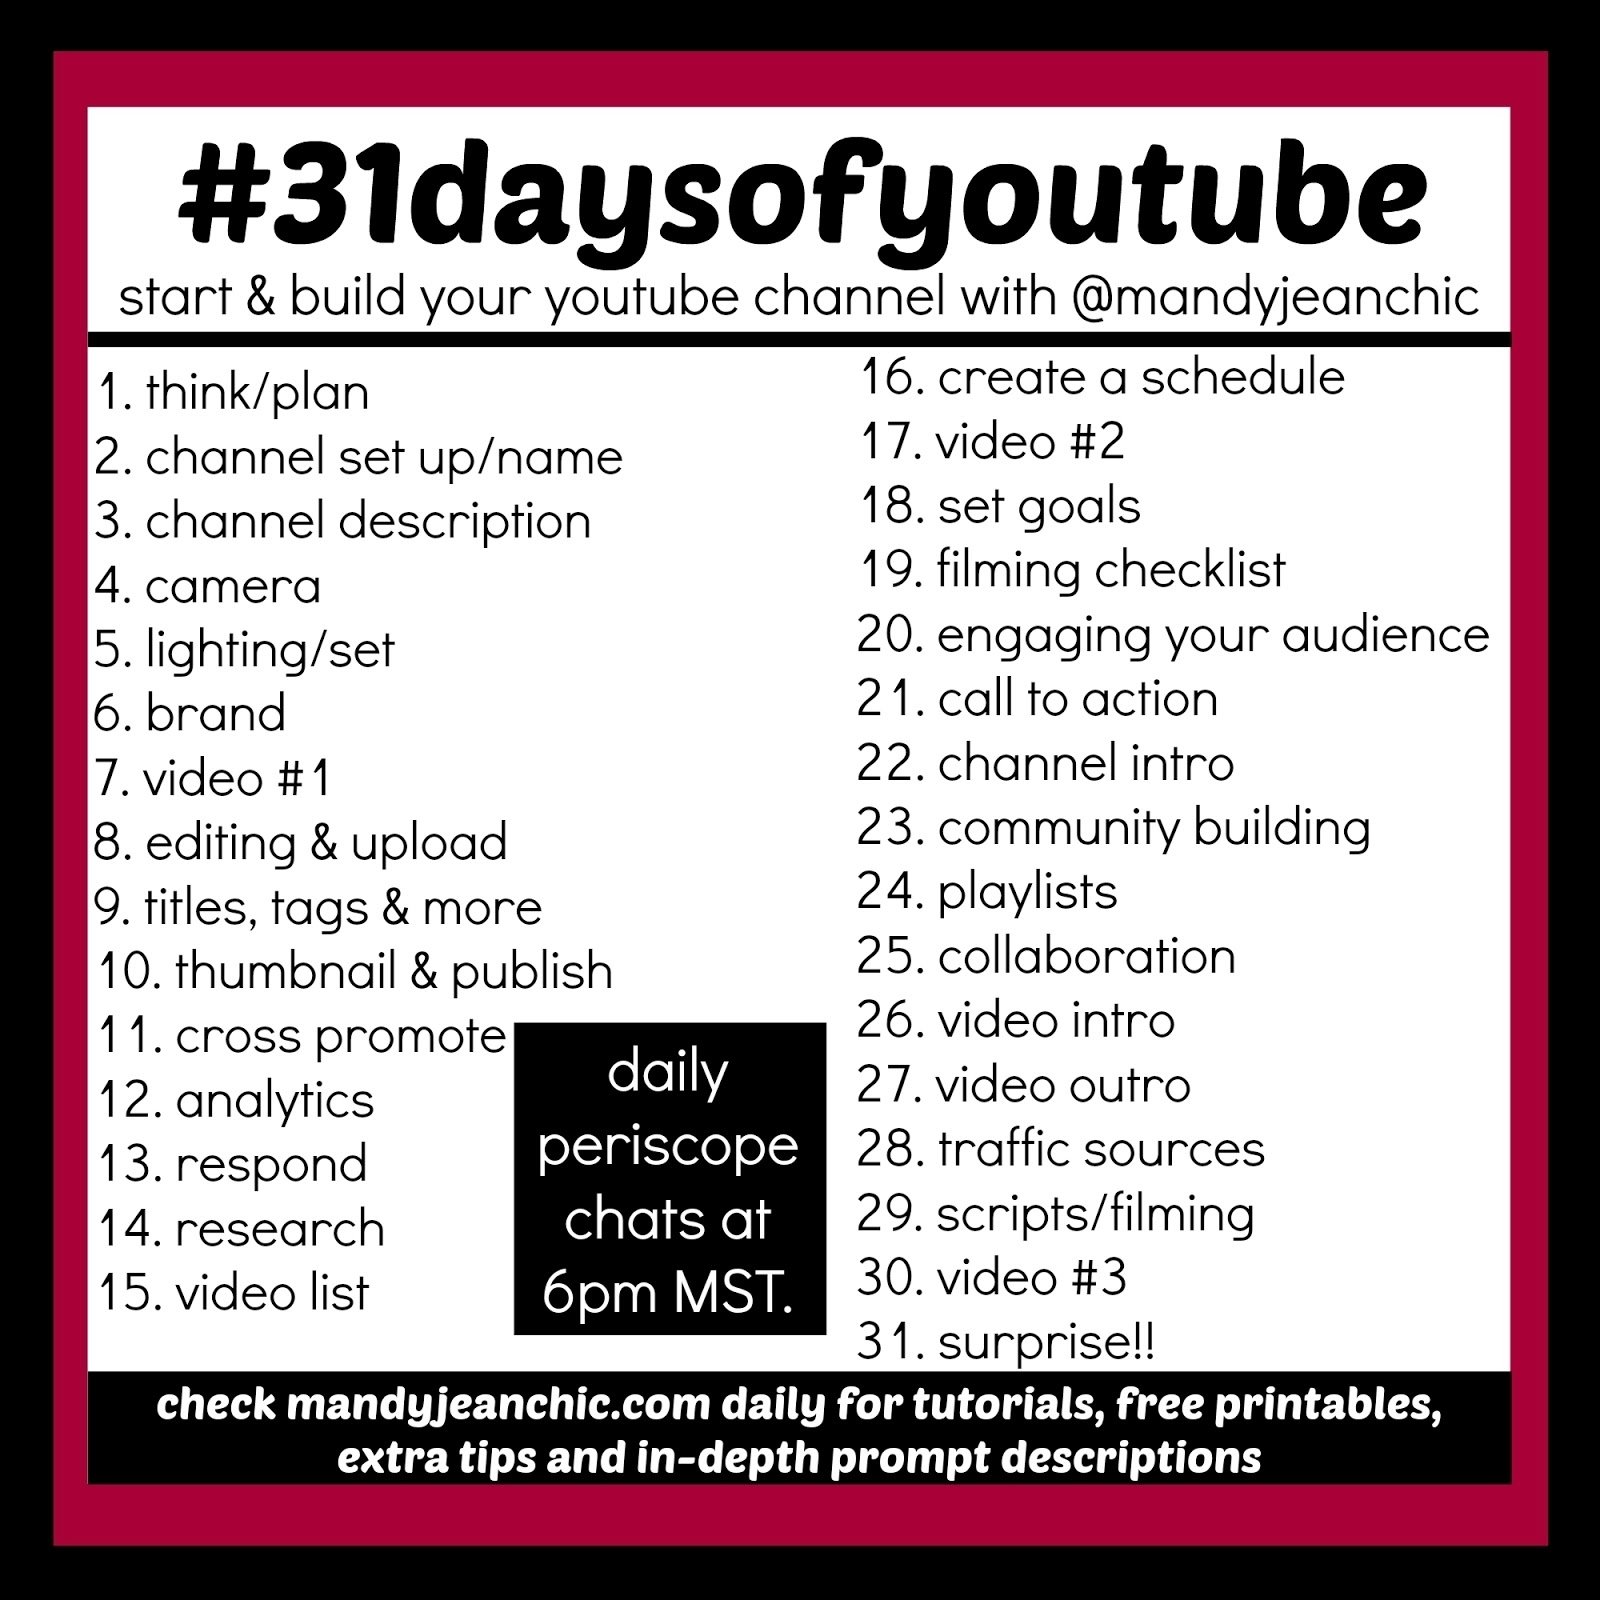 10 Unique Good Ideas For Youtube Videos mandy jean chic 31daysofyoutube day 11 cross promoting your 2020